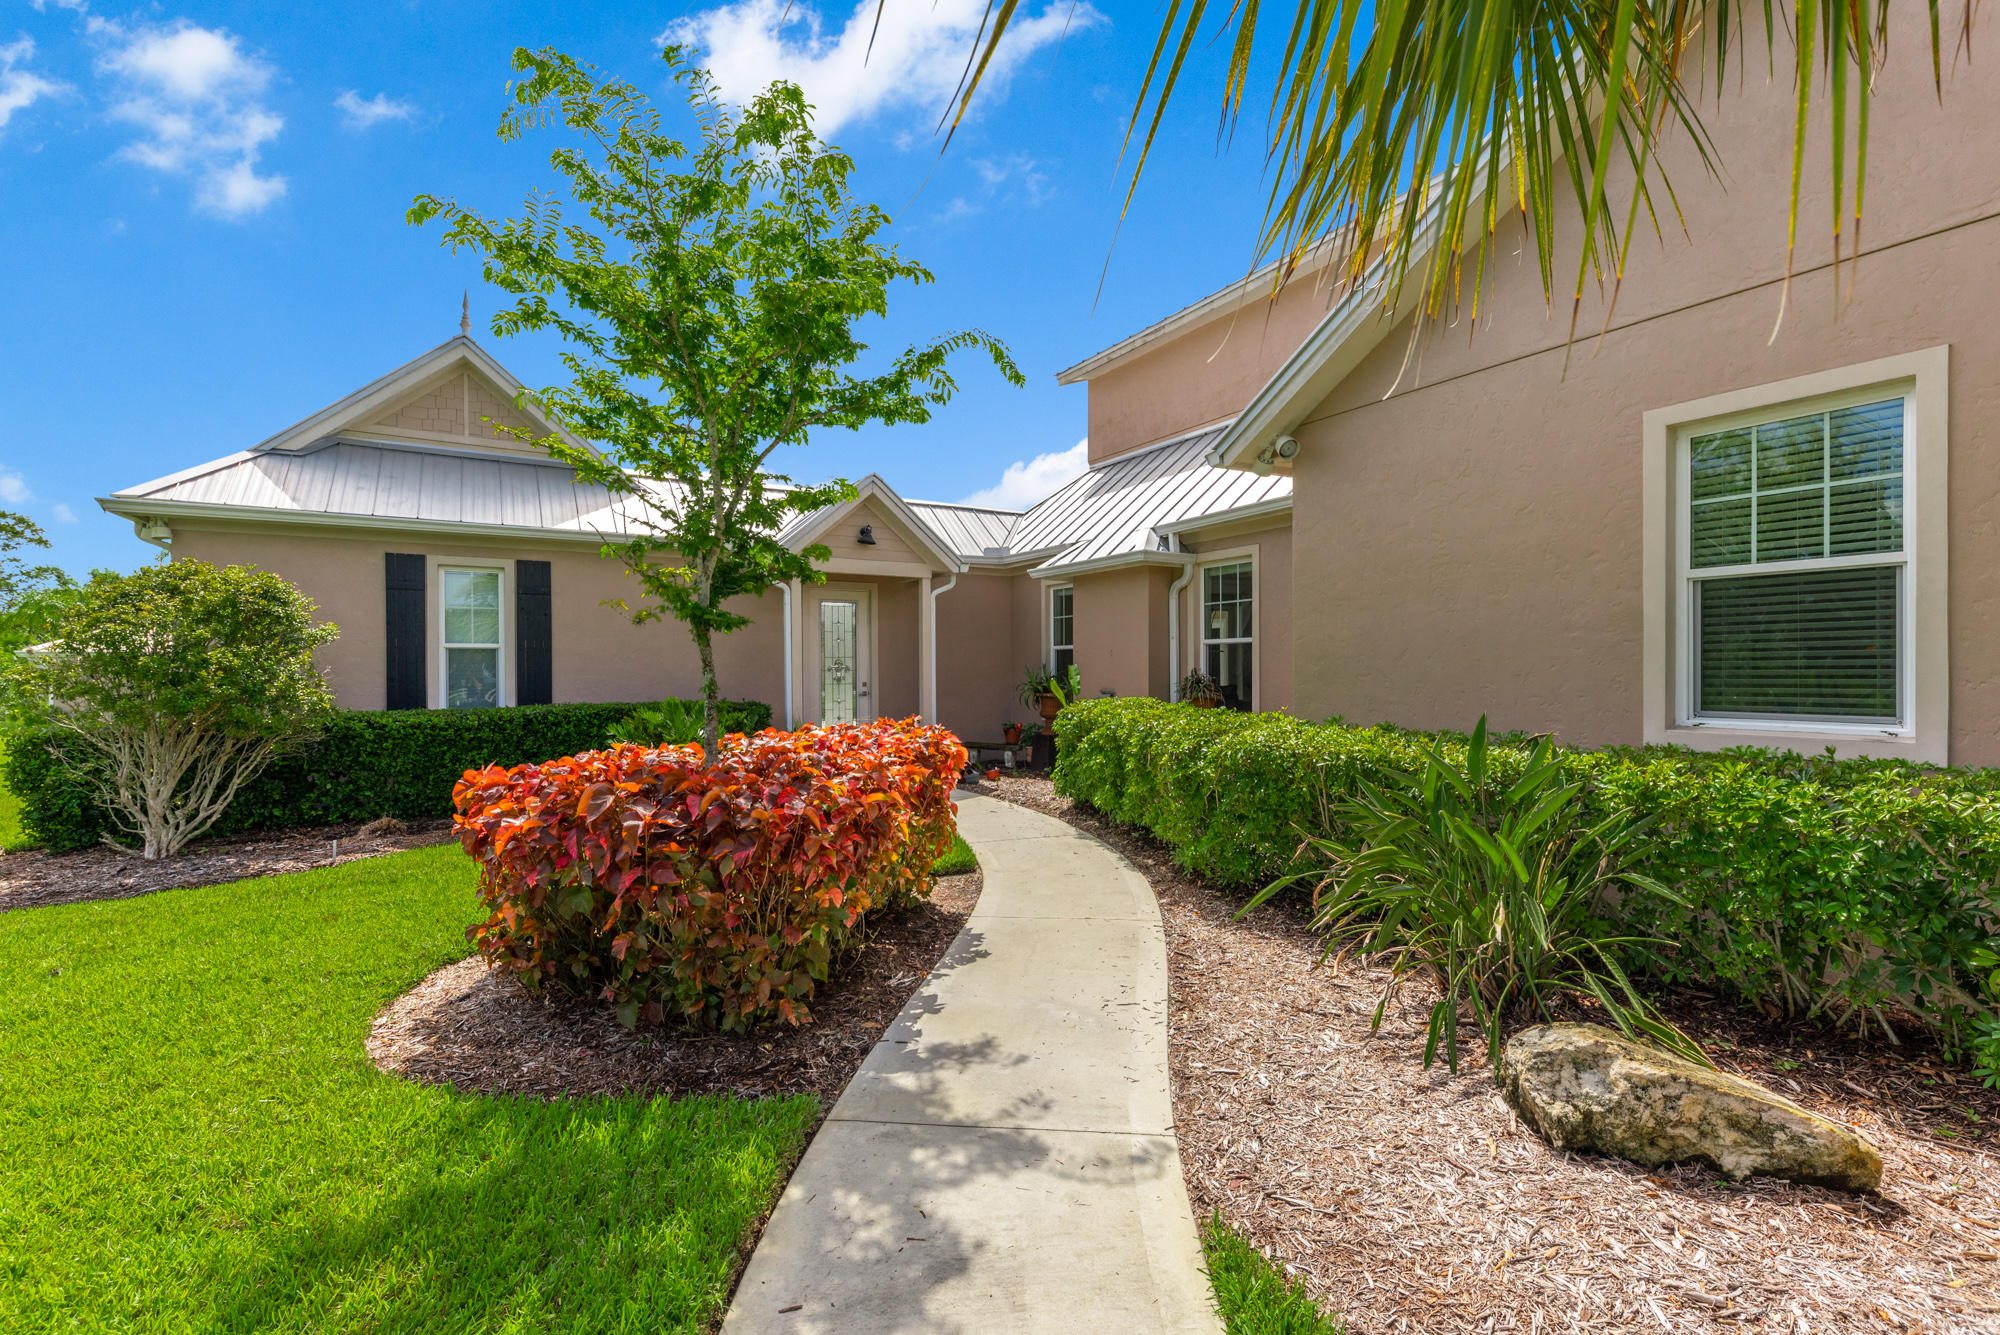 FORT PIERCE HOMES